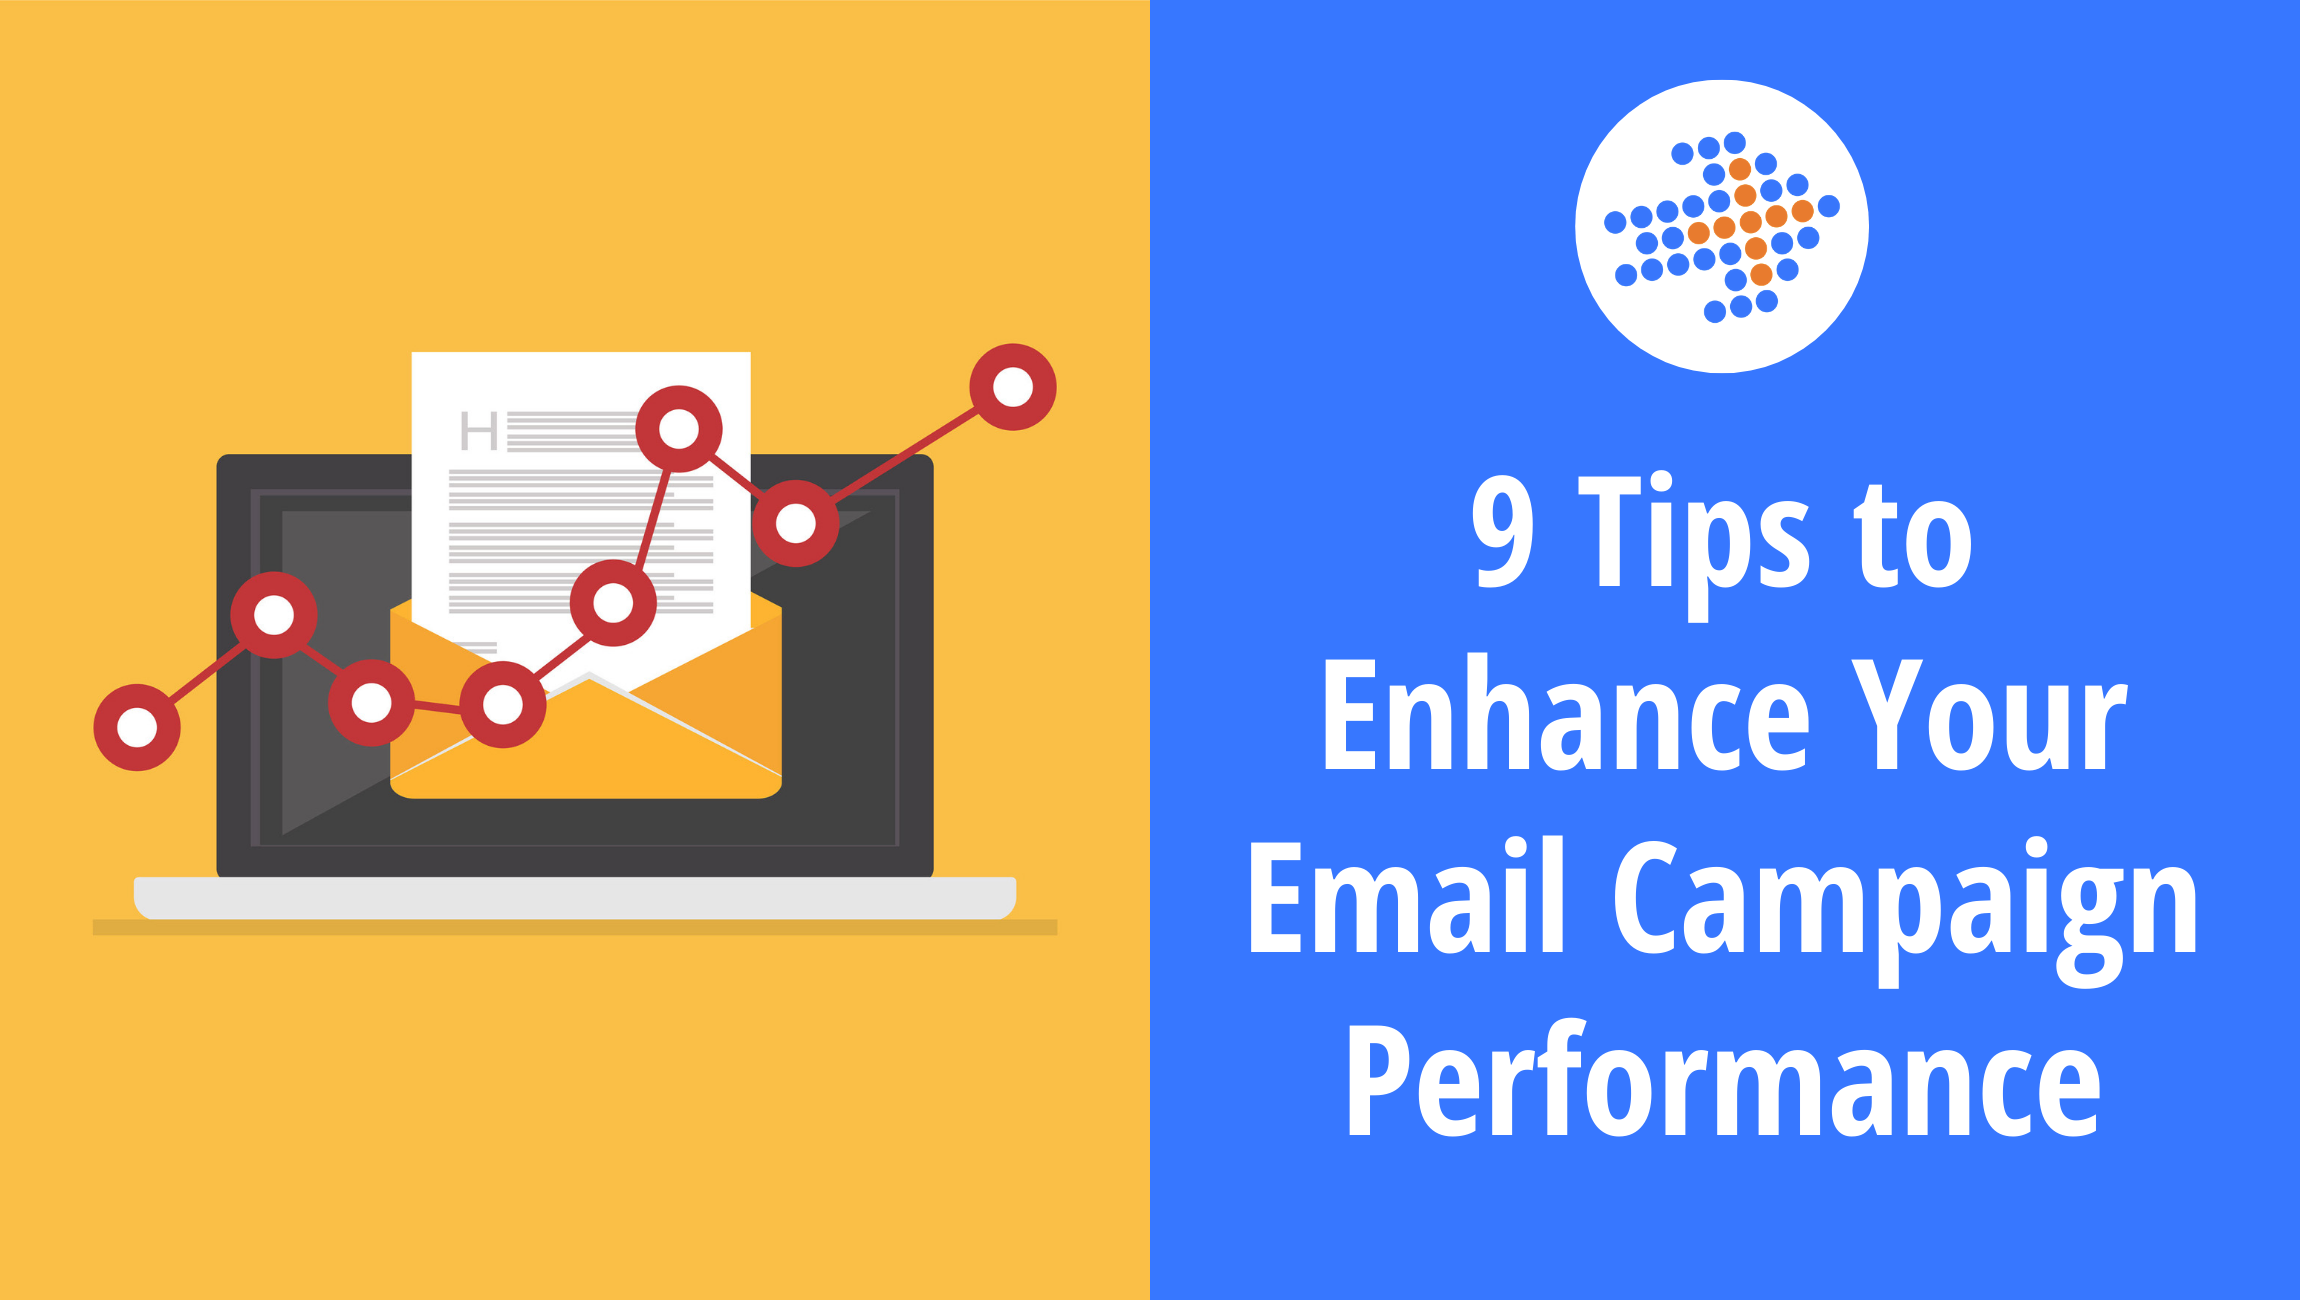 9 tips to enhance your email campaign performance